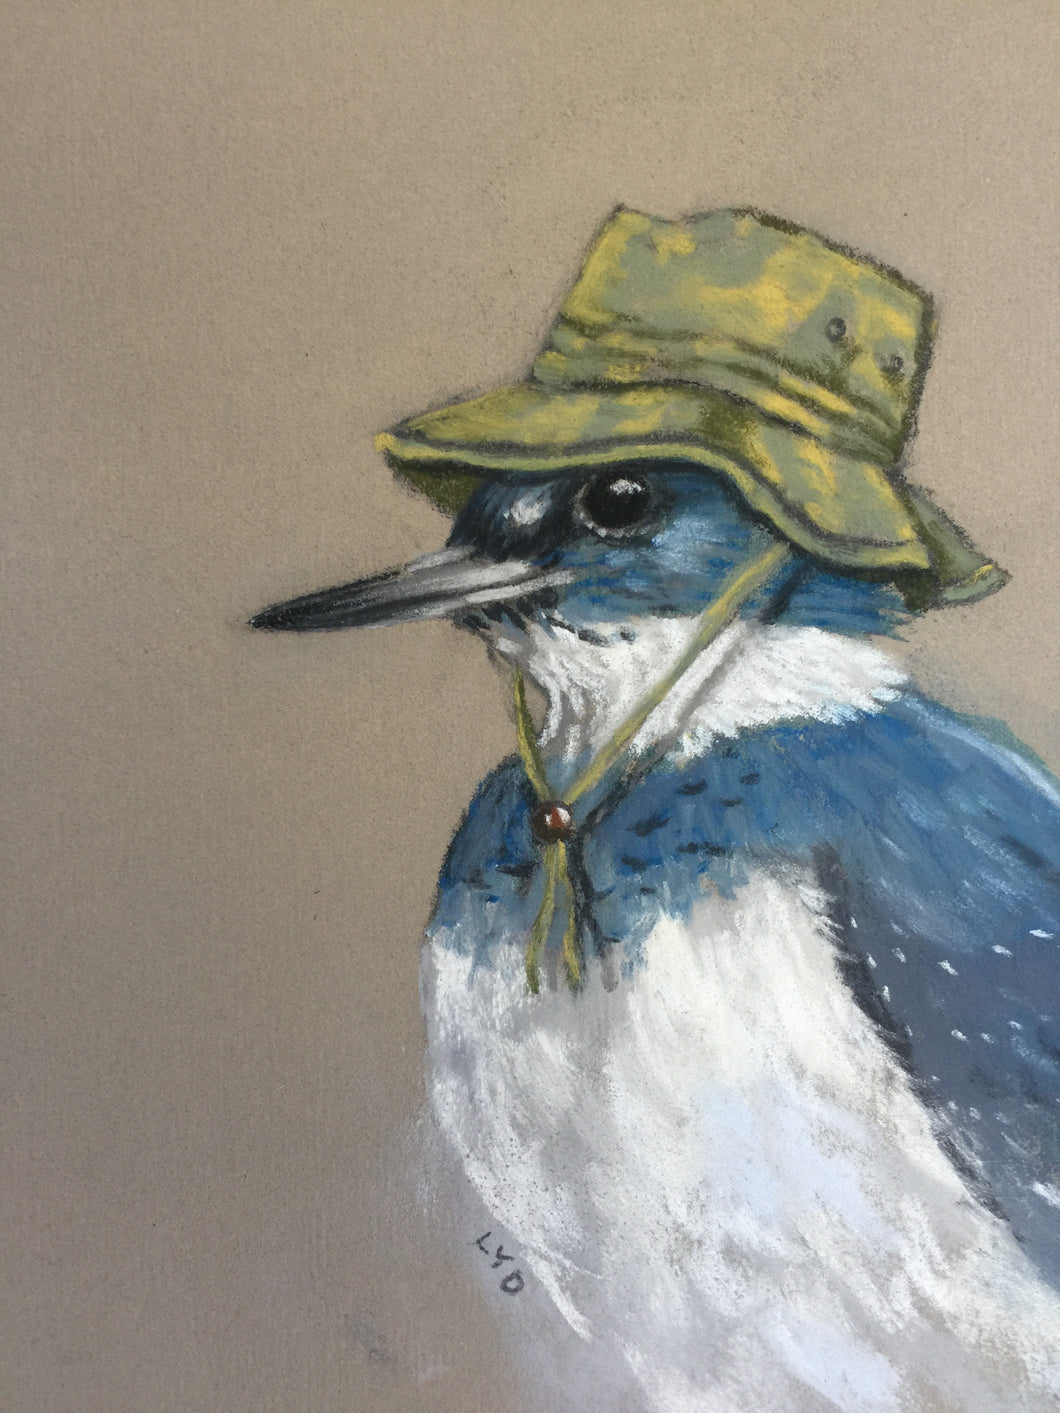 Belted Kingfisher in a Fishing Hat